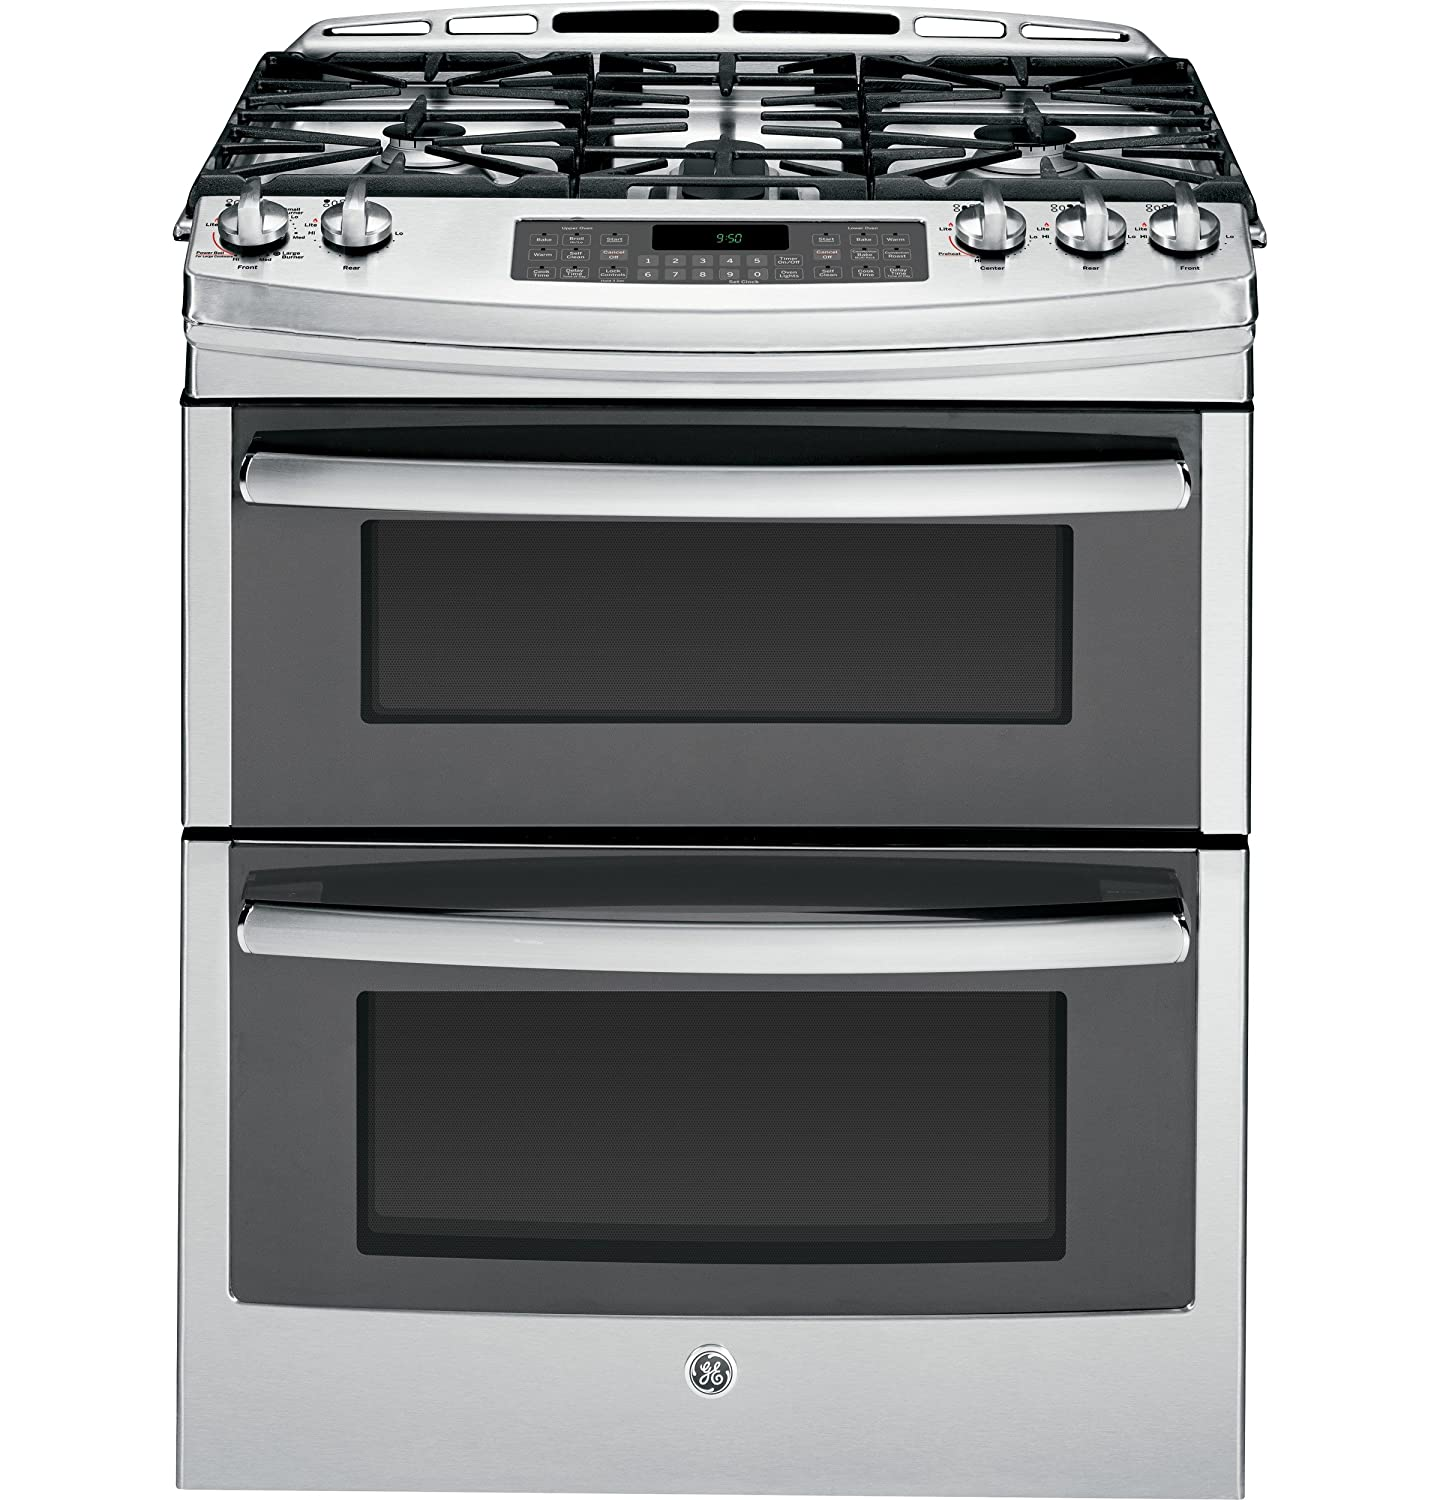 Top 5 Double Oven Gas Range For 2015